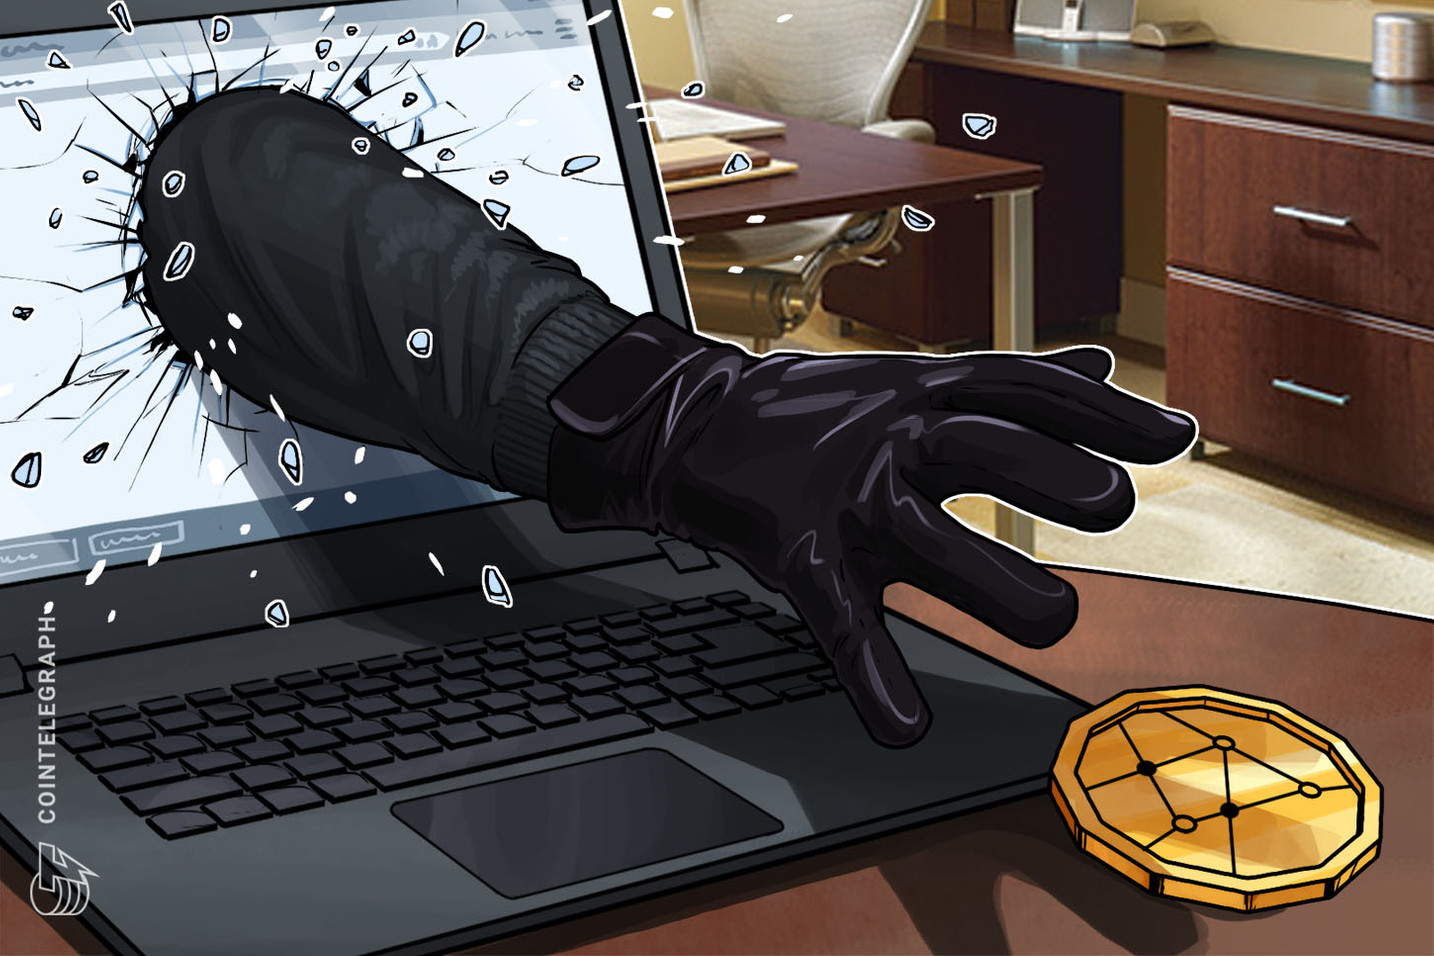 Bitpoint Reveals Amounts Stolen, Pledging to Reimburse Users in Crypto